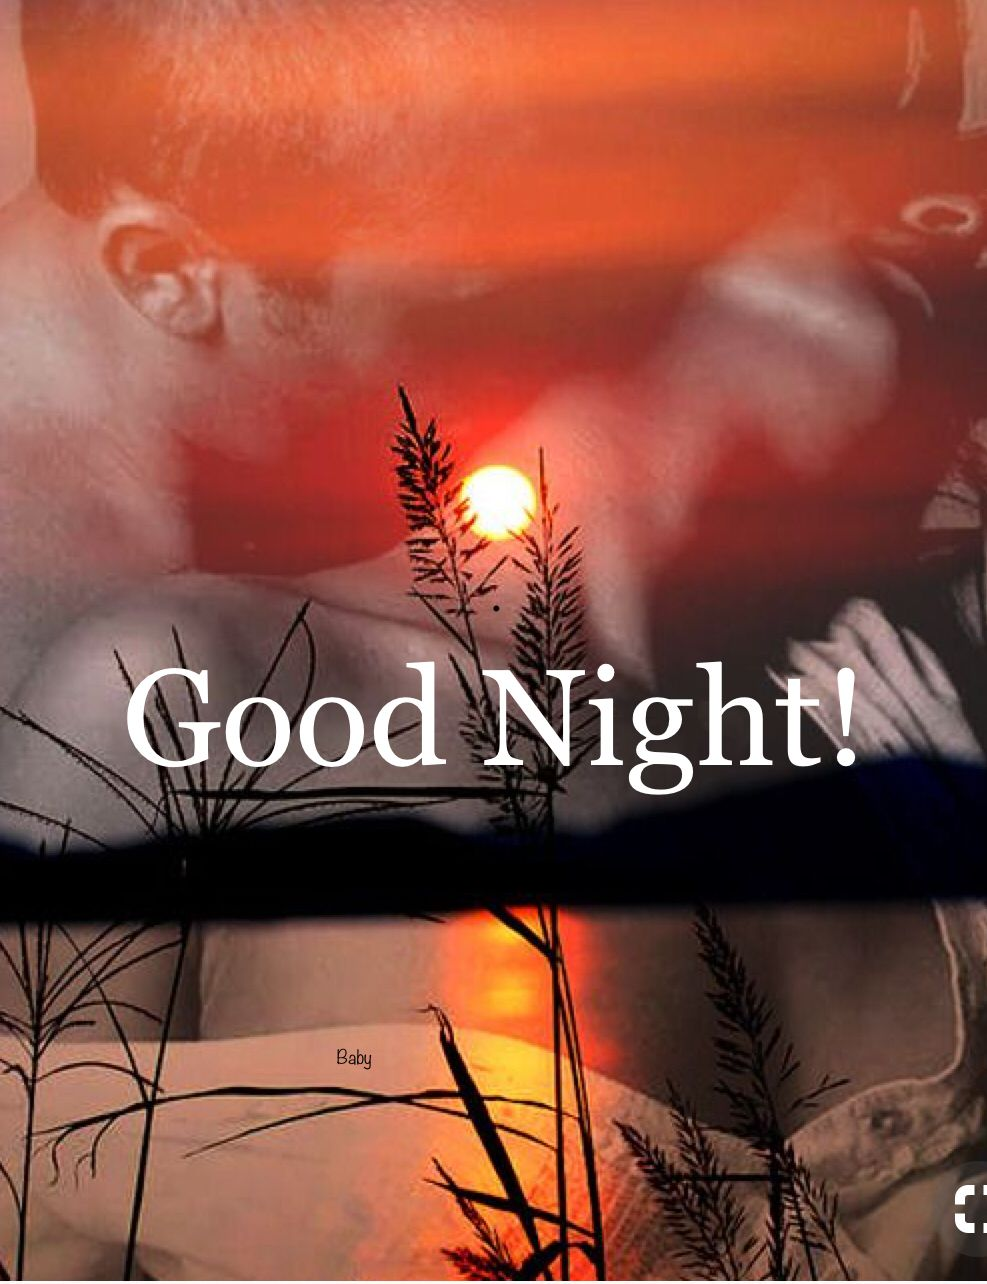 I Miss You Good Night Pictures Photos And Images For Facebook Tumblr Pinterest And Twitter Good Night Funny Good Night Hug Good Night Greetings